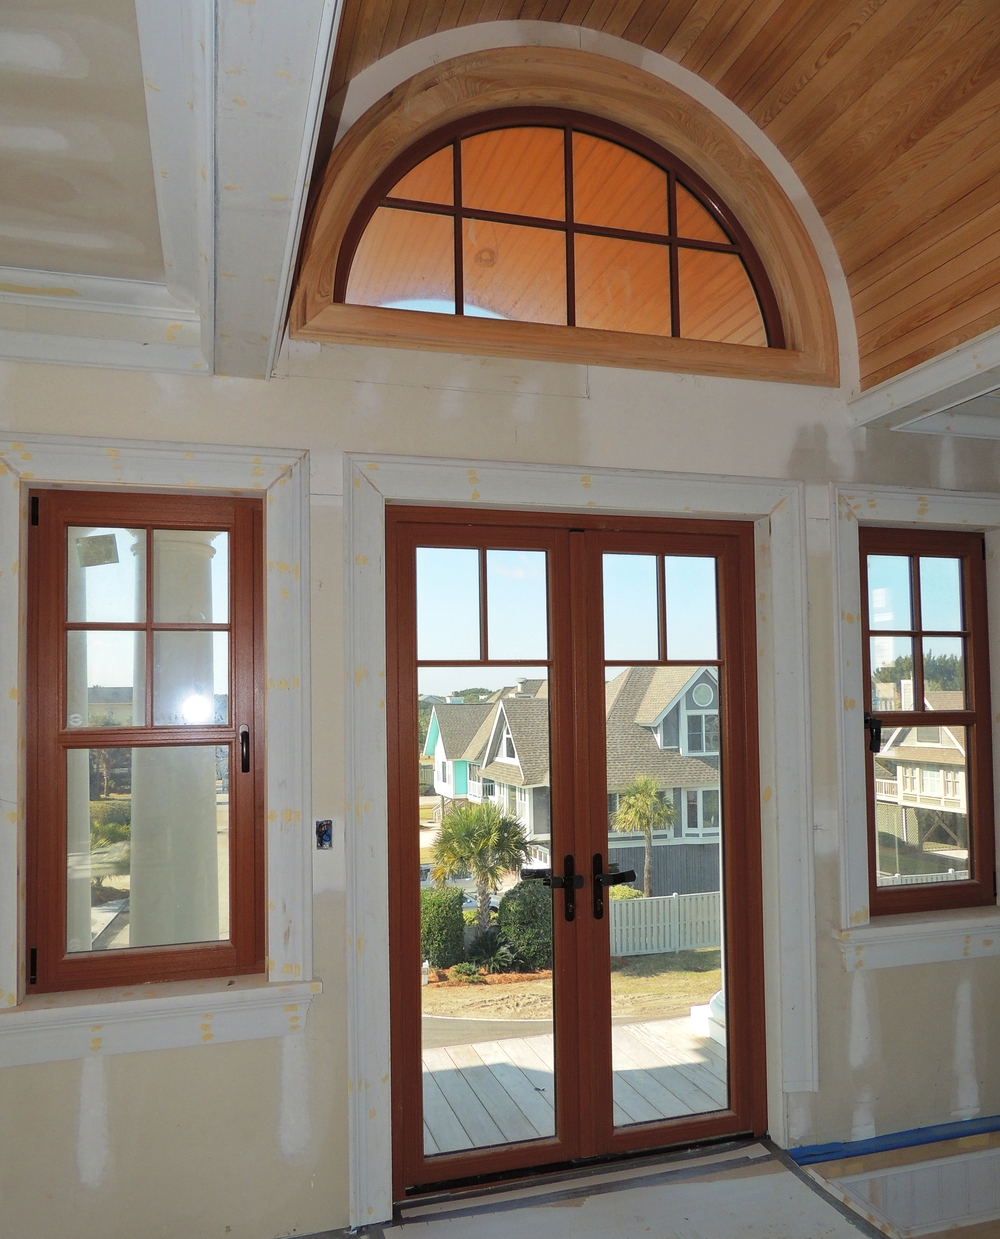 French Doors And Windows : French doors — henselstone window and door systems inc